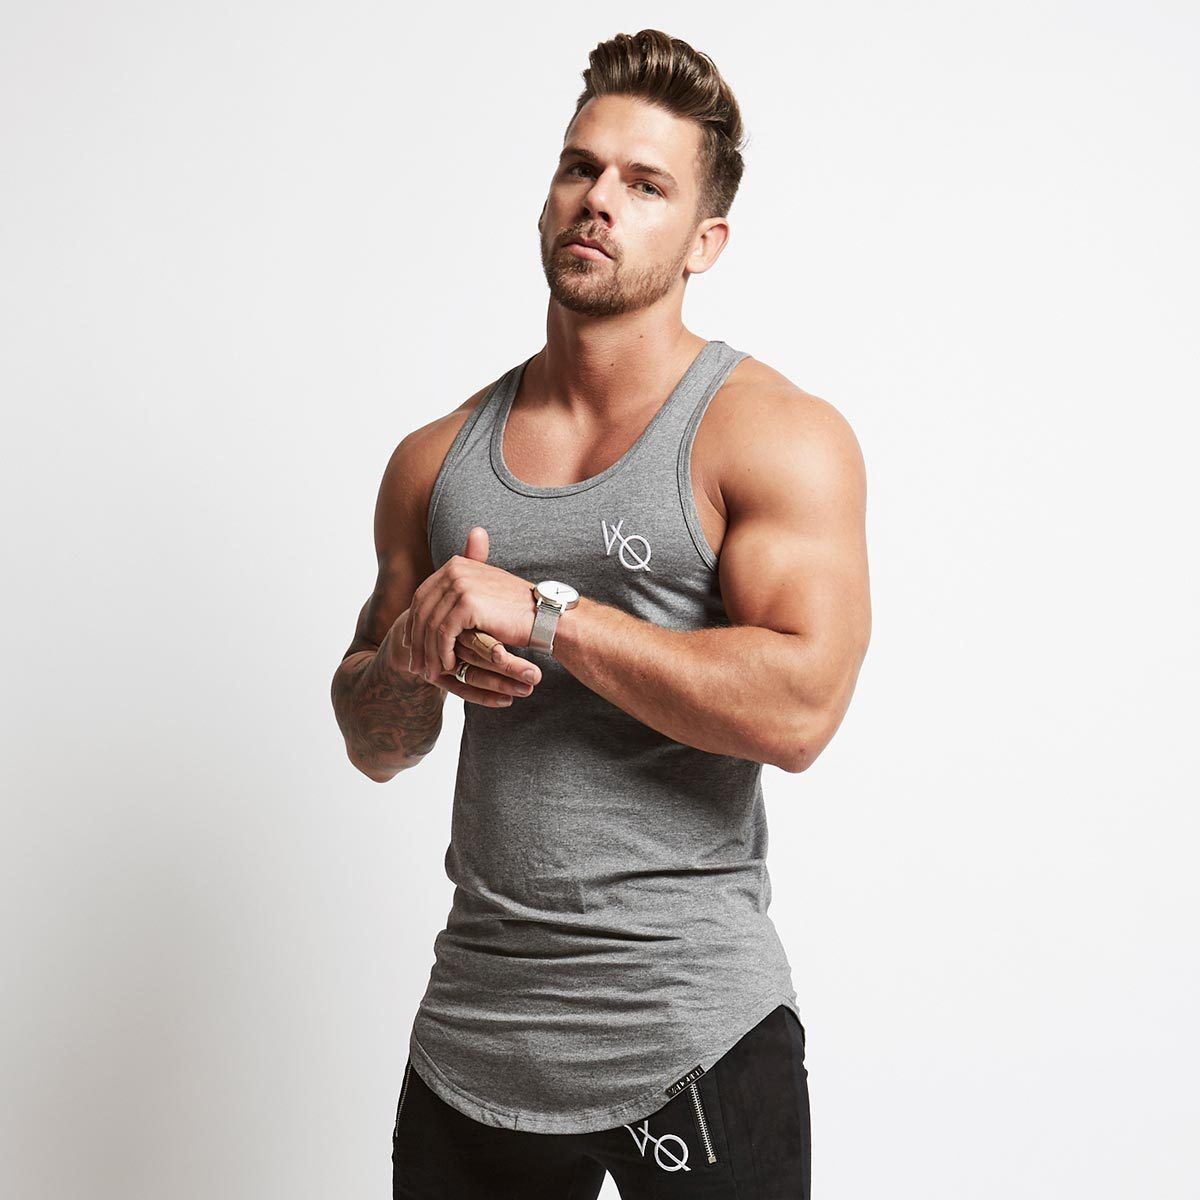 Men Casual Summer Vest Gym Training Fitness Sports Muscle Sleeveless Shirt Tops